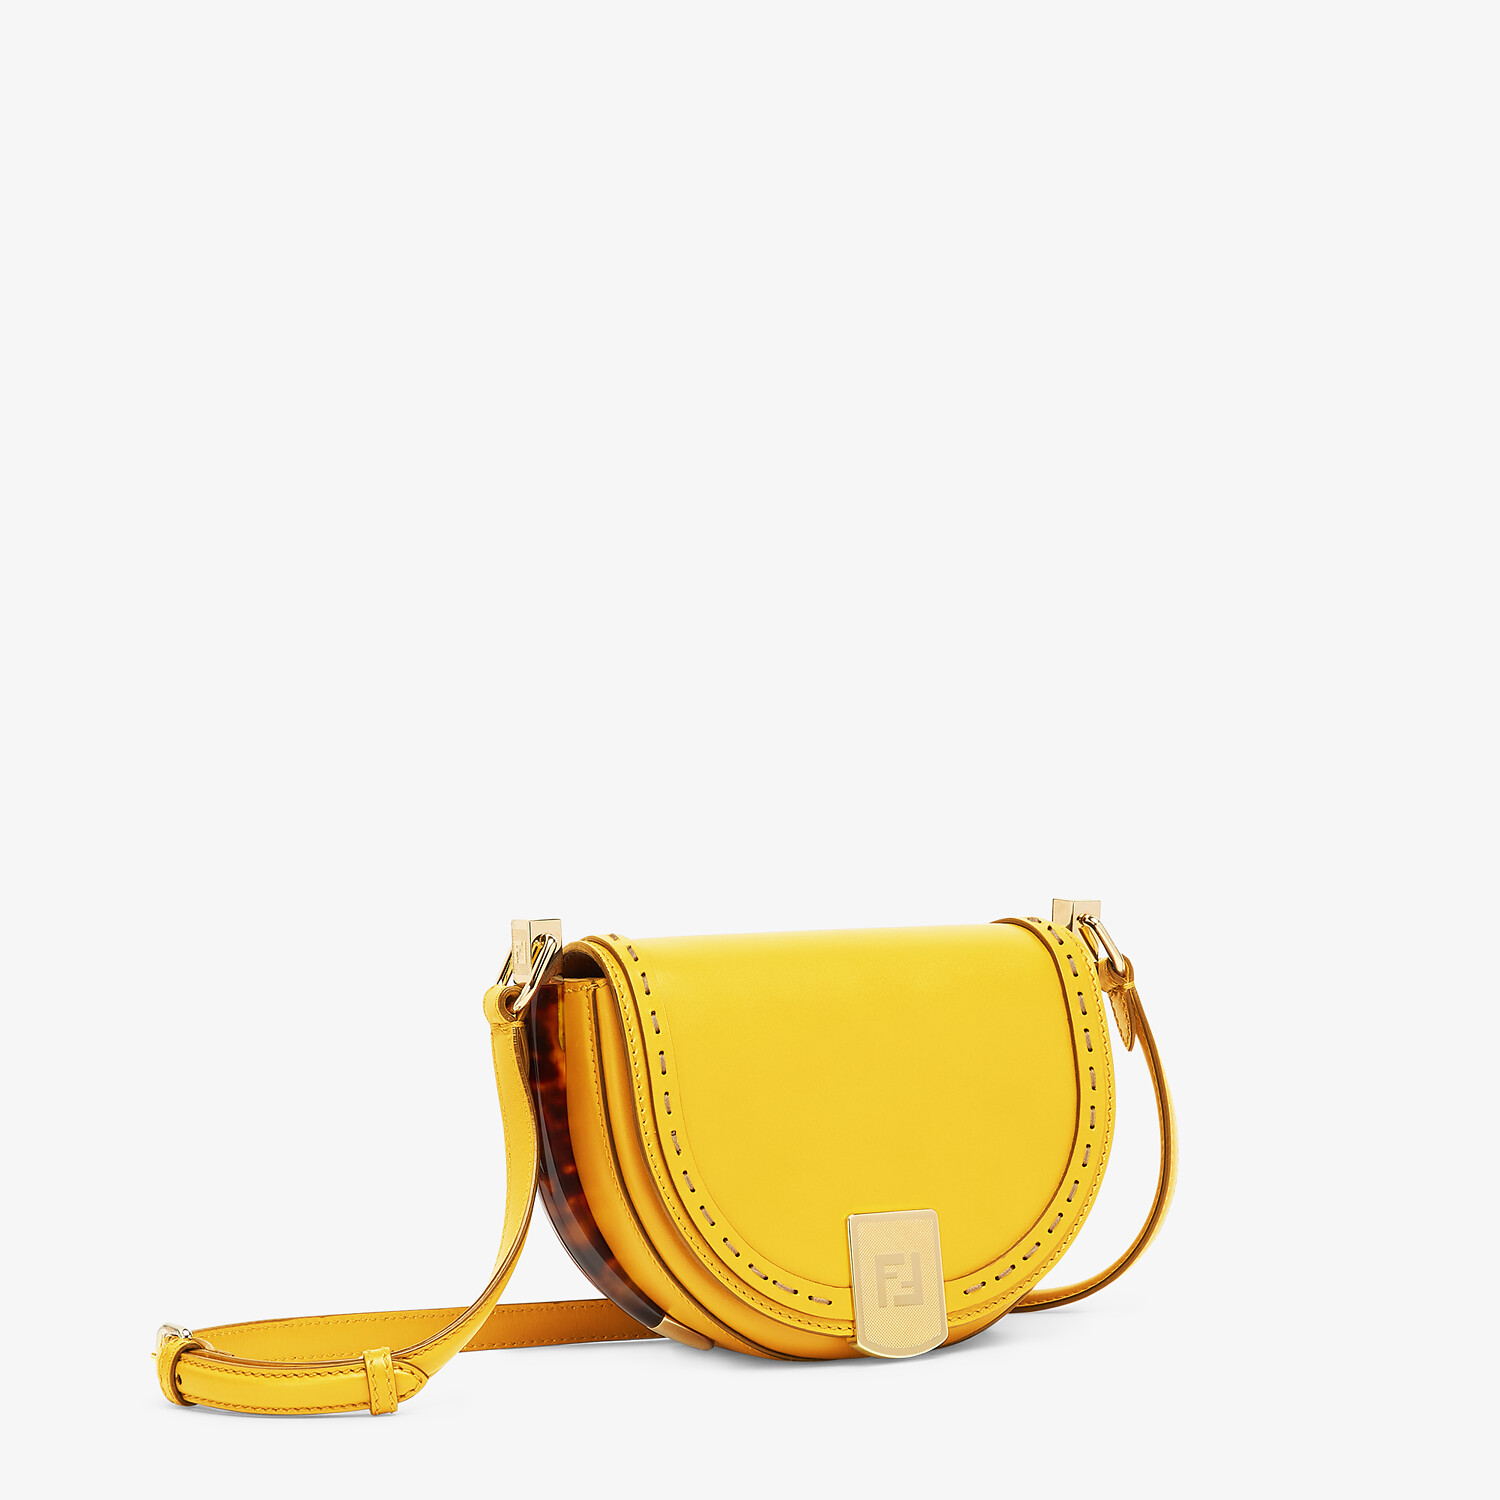 FENDI MOONLIGHT - Yellow leather bag - view 2 detail